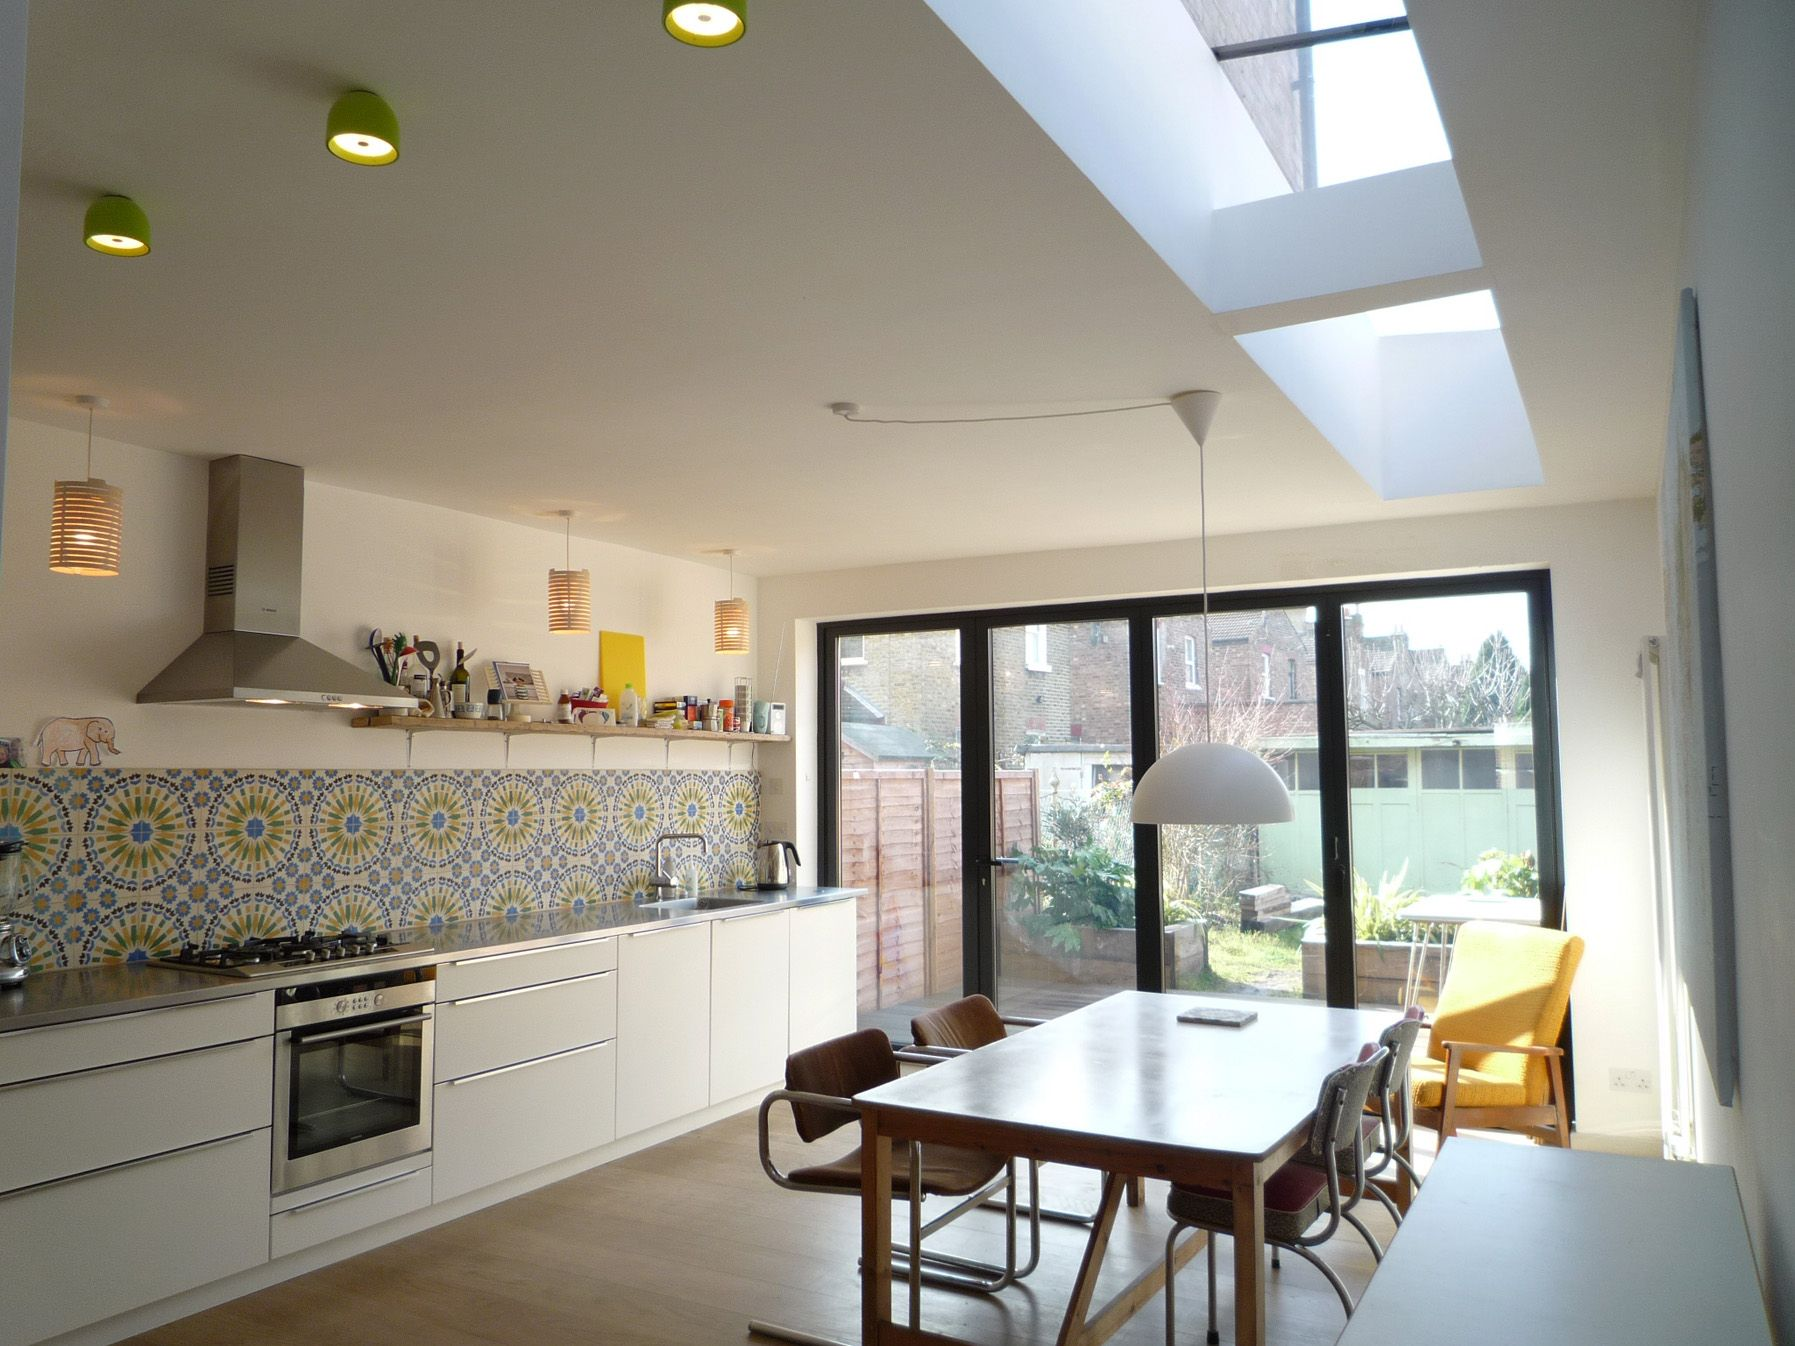 Terraced house kitchen extension google search for Kitchen ideas victorian terrace